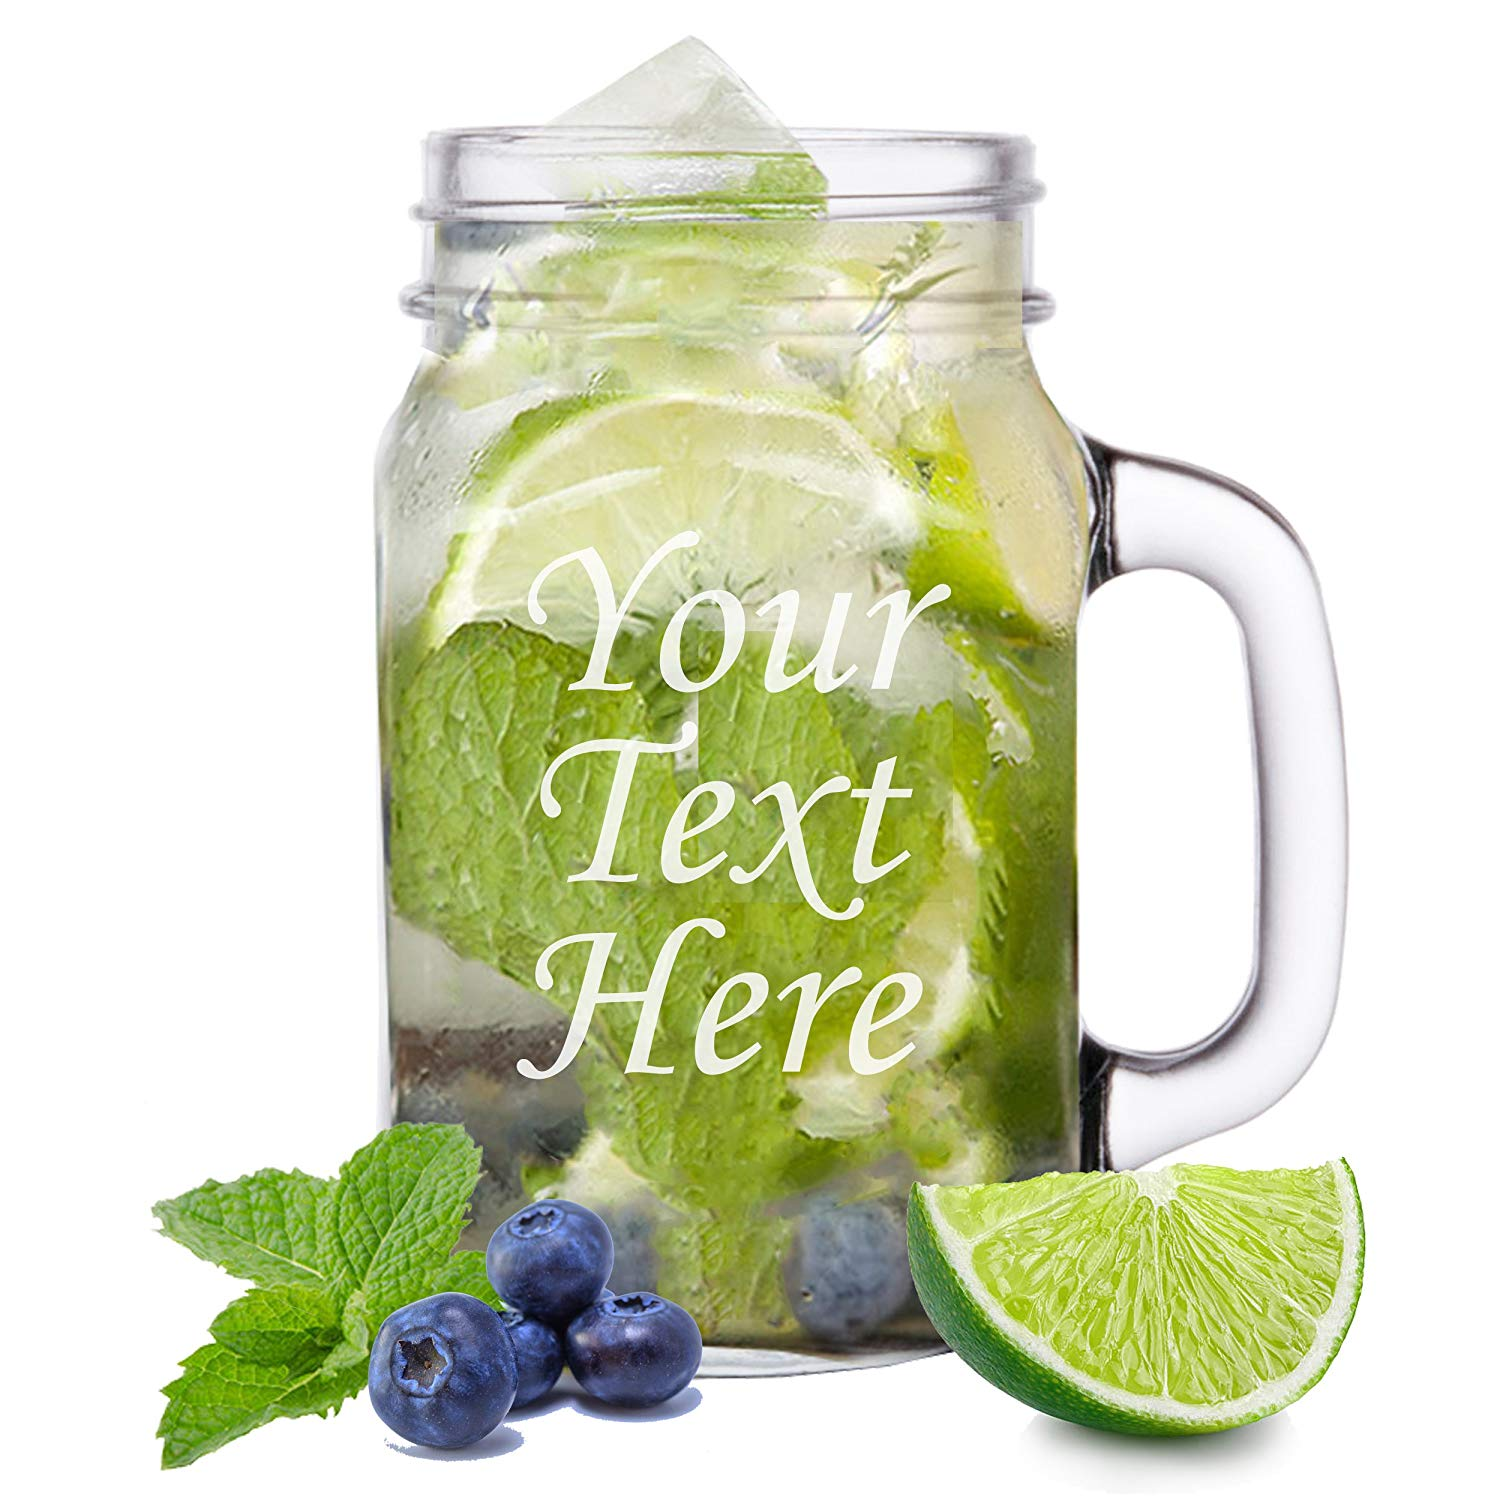 Personalized Glass 16 oz Mason Jar - Engraved With Your Custom Text